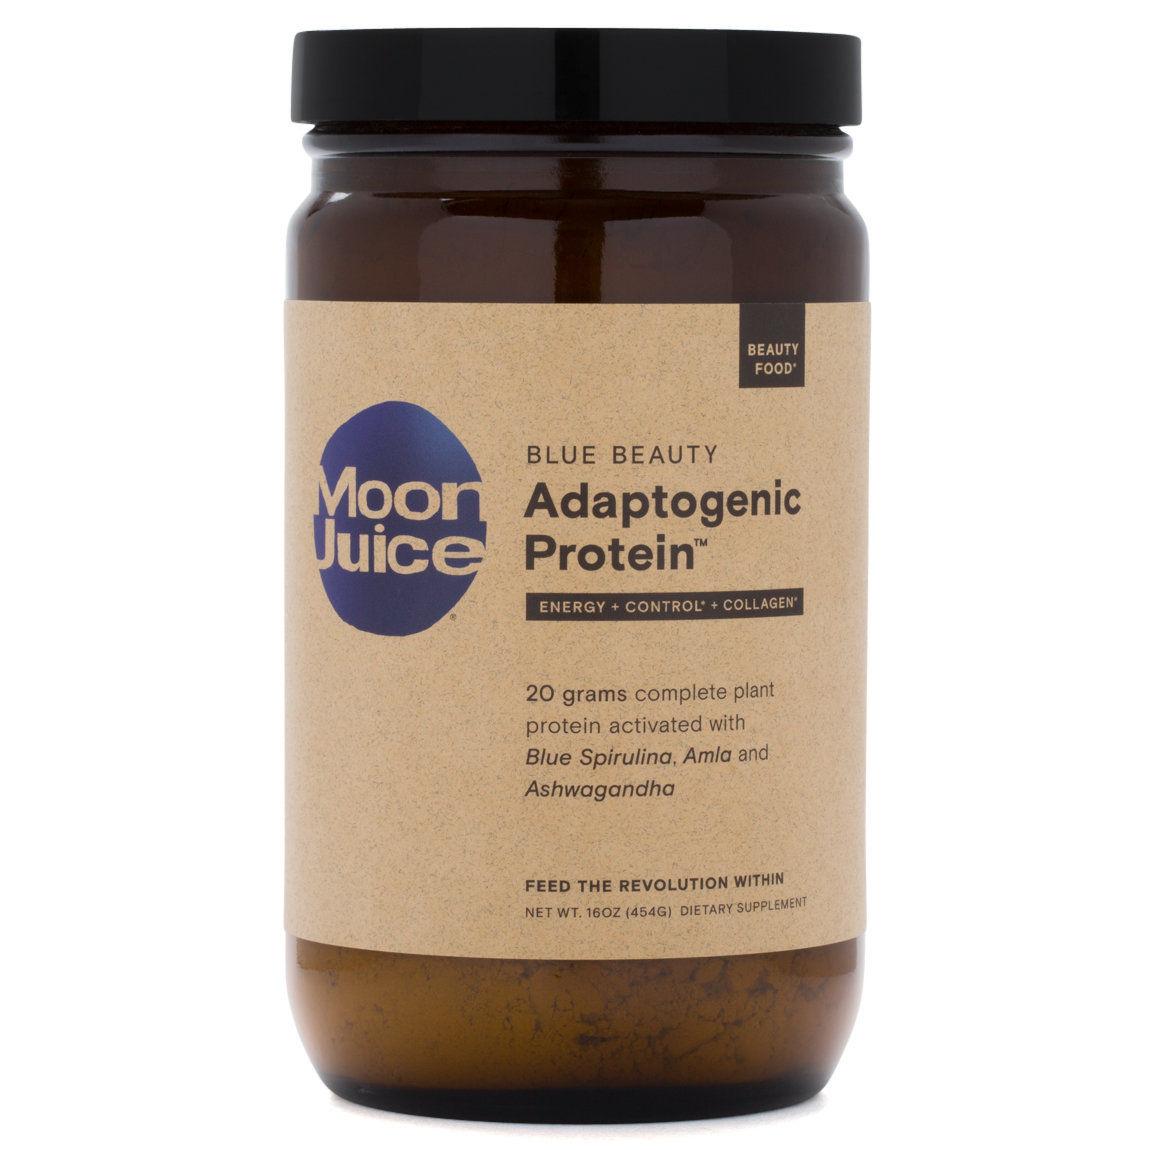 Moon Juice Blue Beauty Adaptogenic Protein product smear.